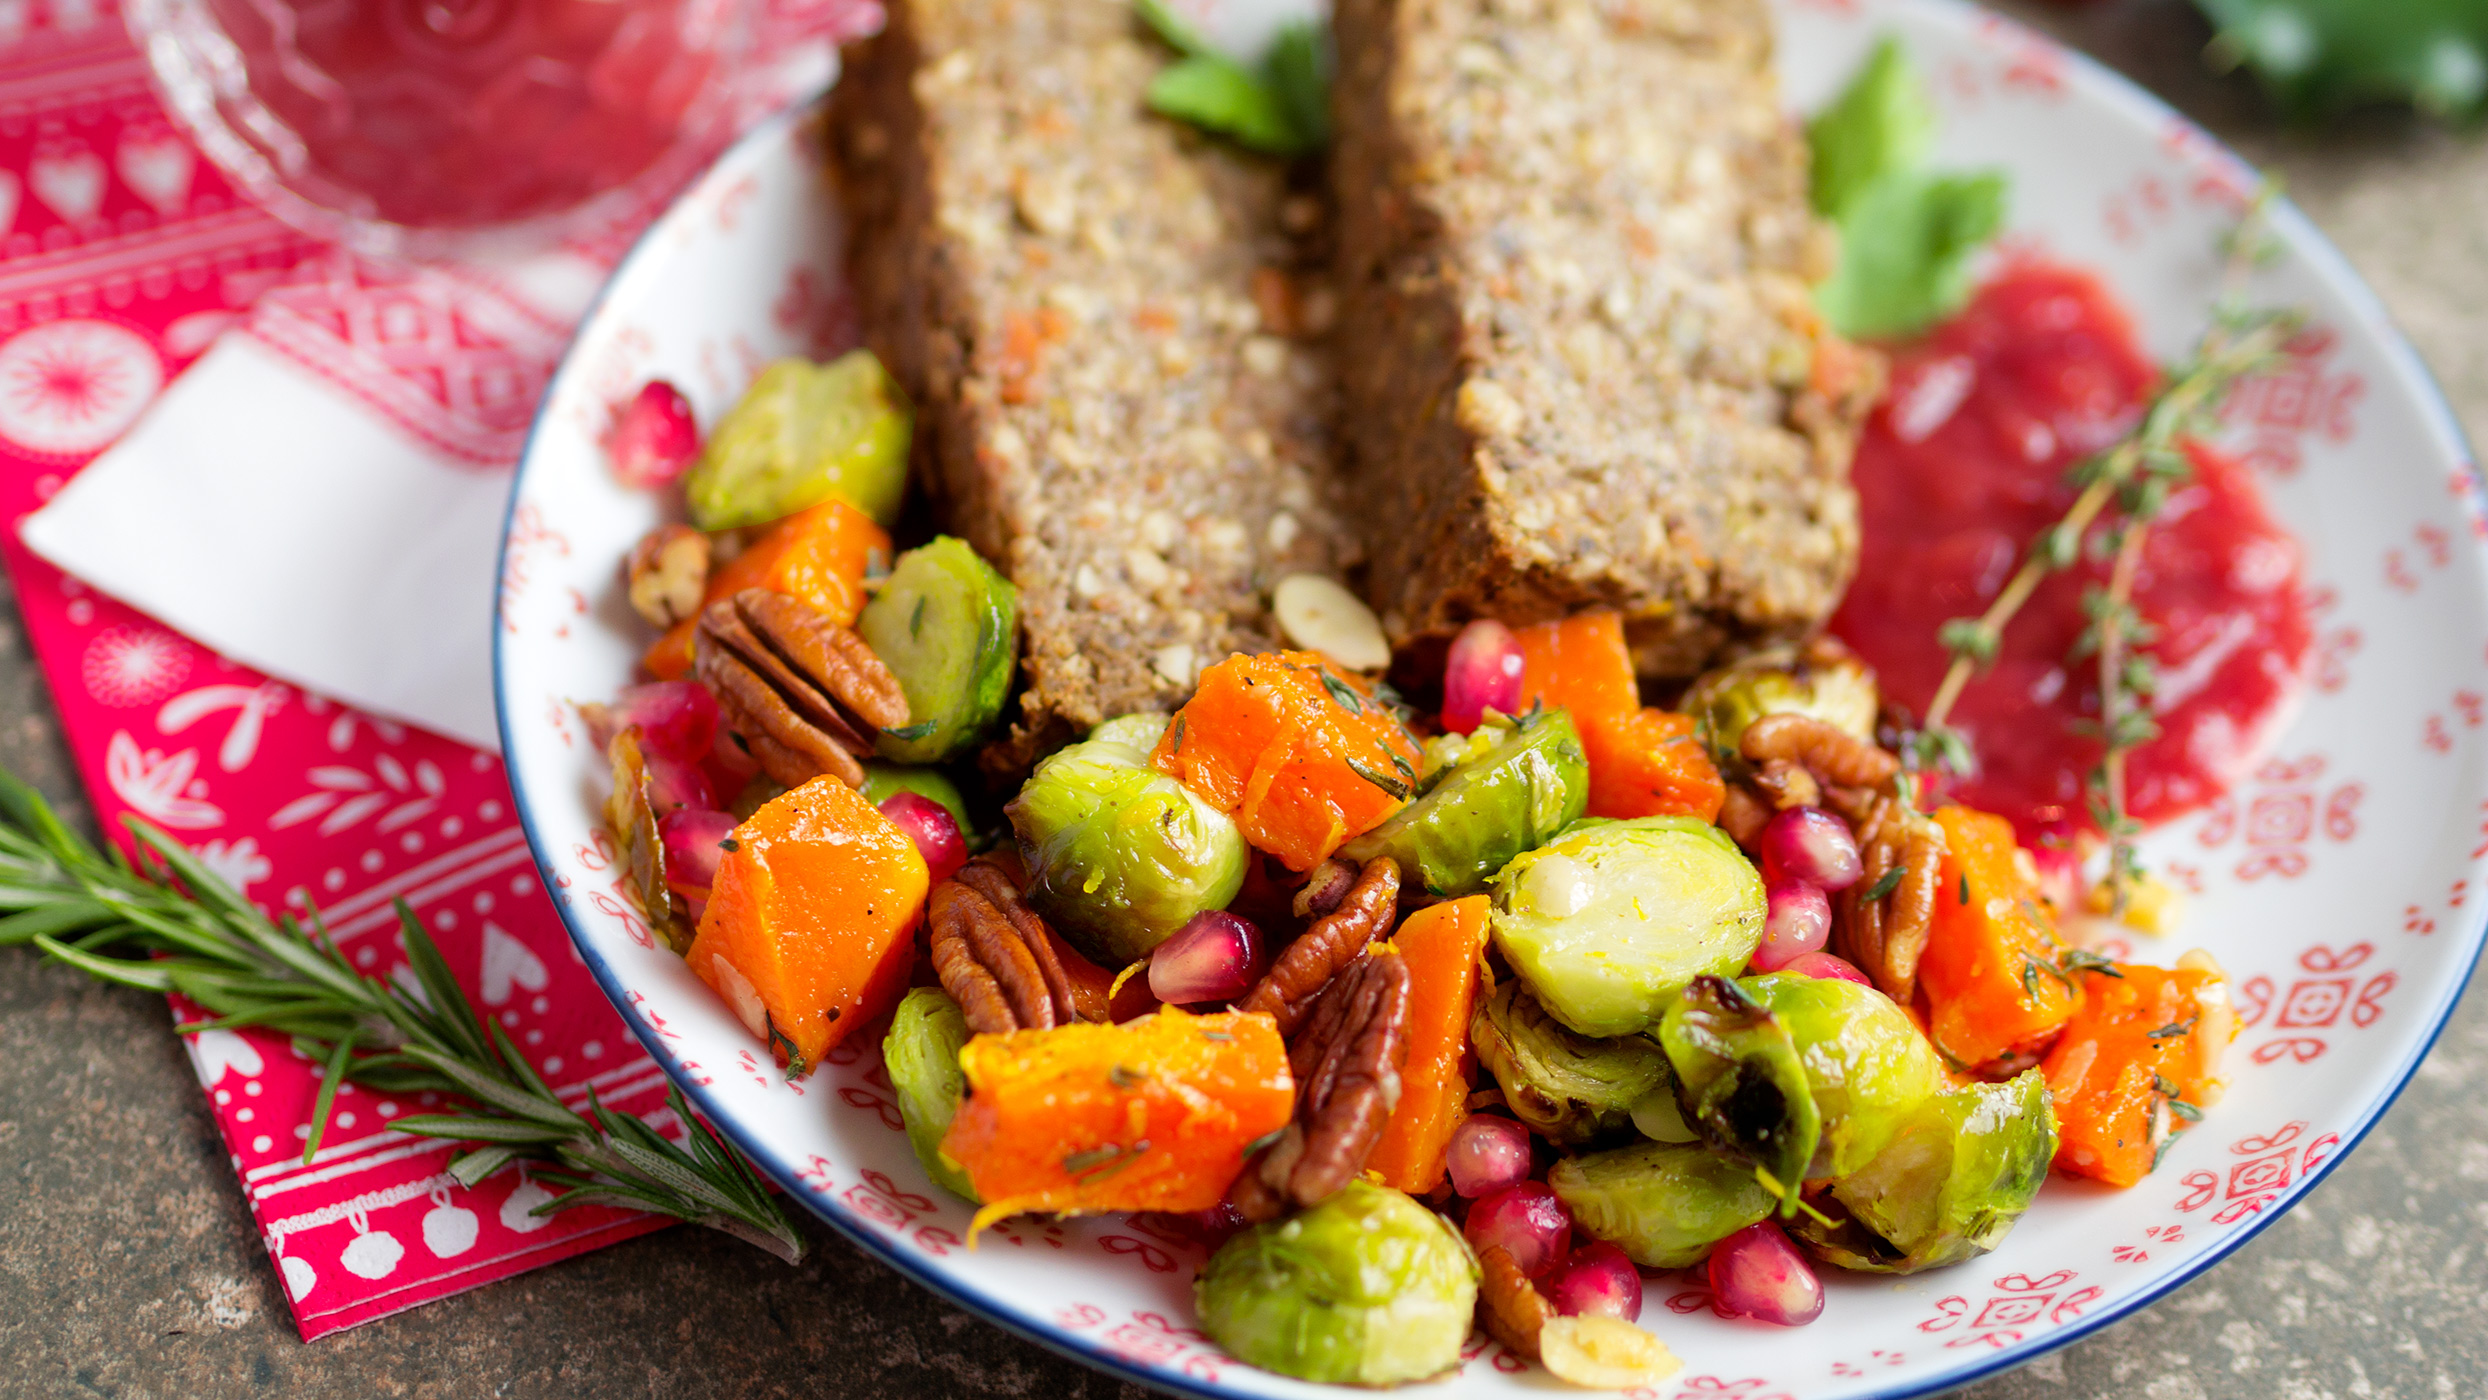 Christmas recipe video: This is how you make a delicious vegan roast